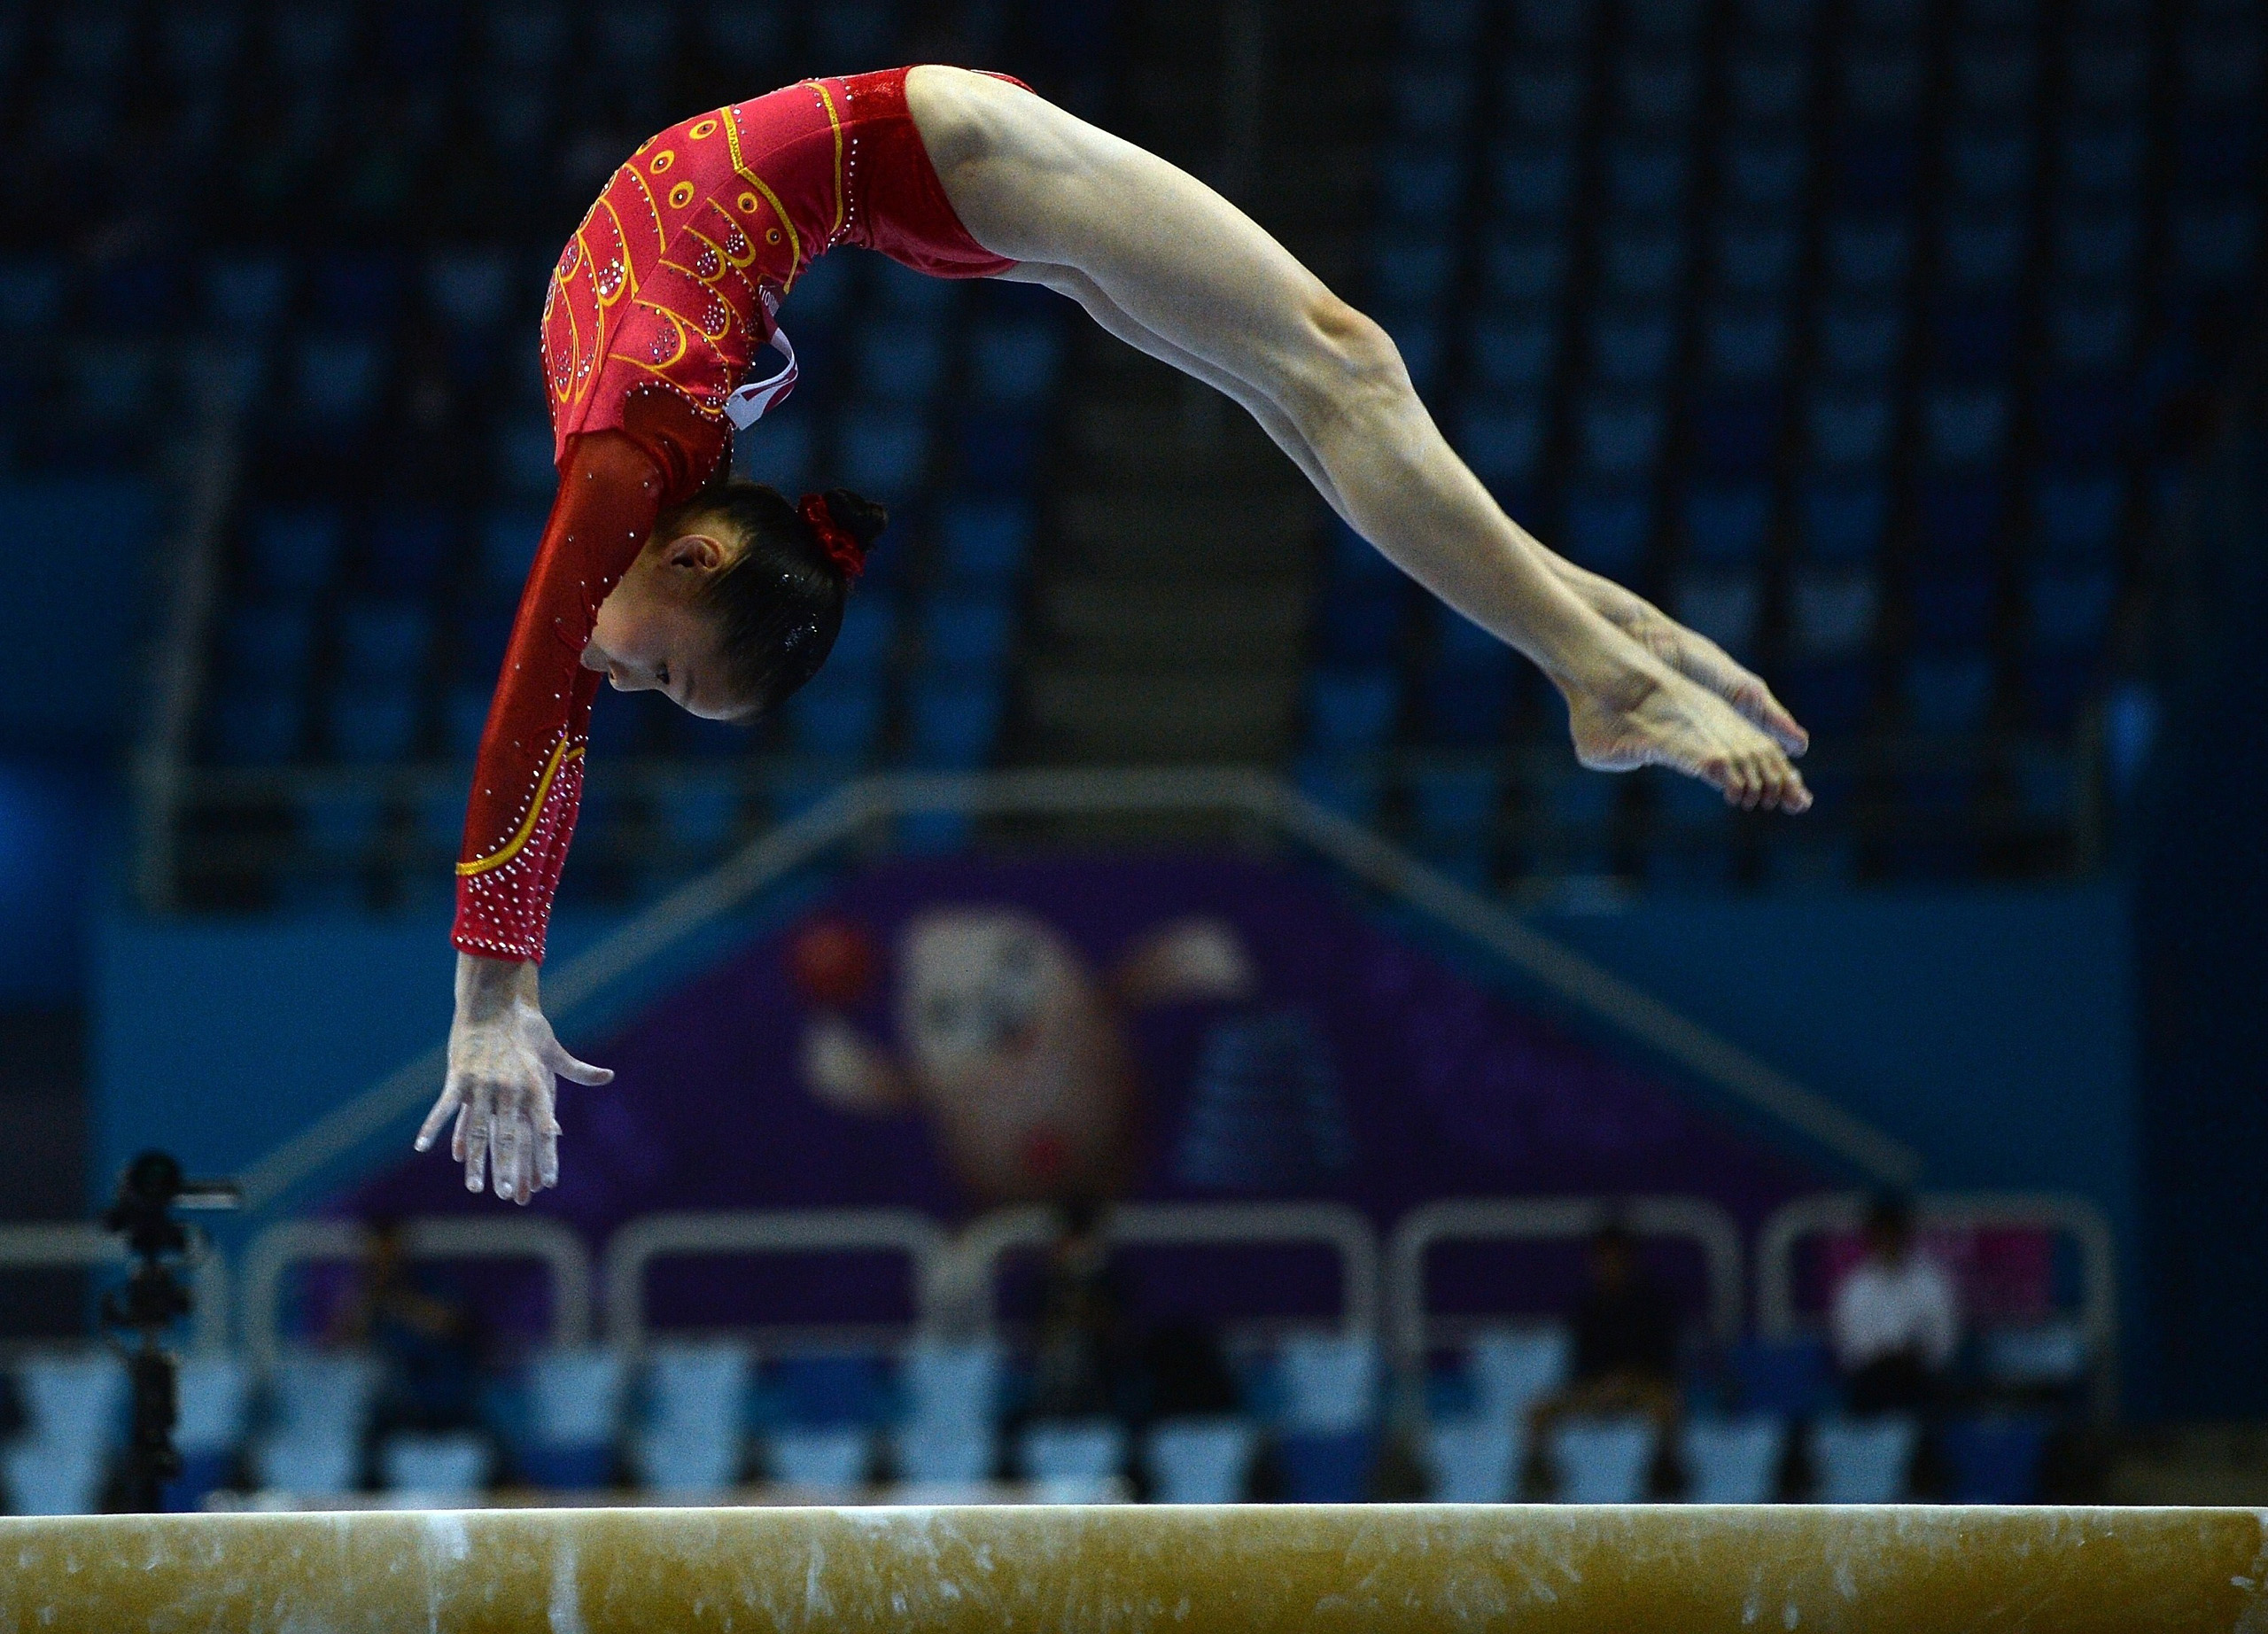 <strong>Shang Chunsong, Gymnastics, China</strong>Sprite like on the uneven bars, she was China's highest finisher in the all-around at the 2015 world championships—placing fourth—and could medal in Rio.